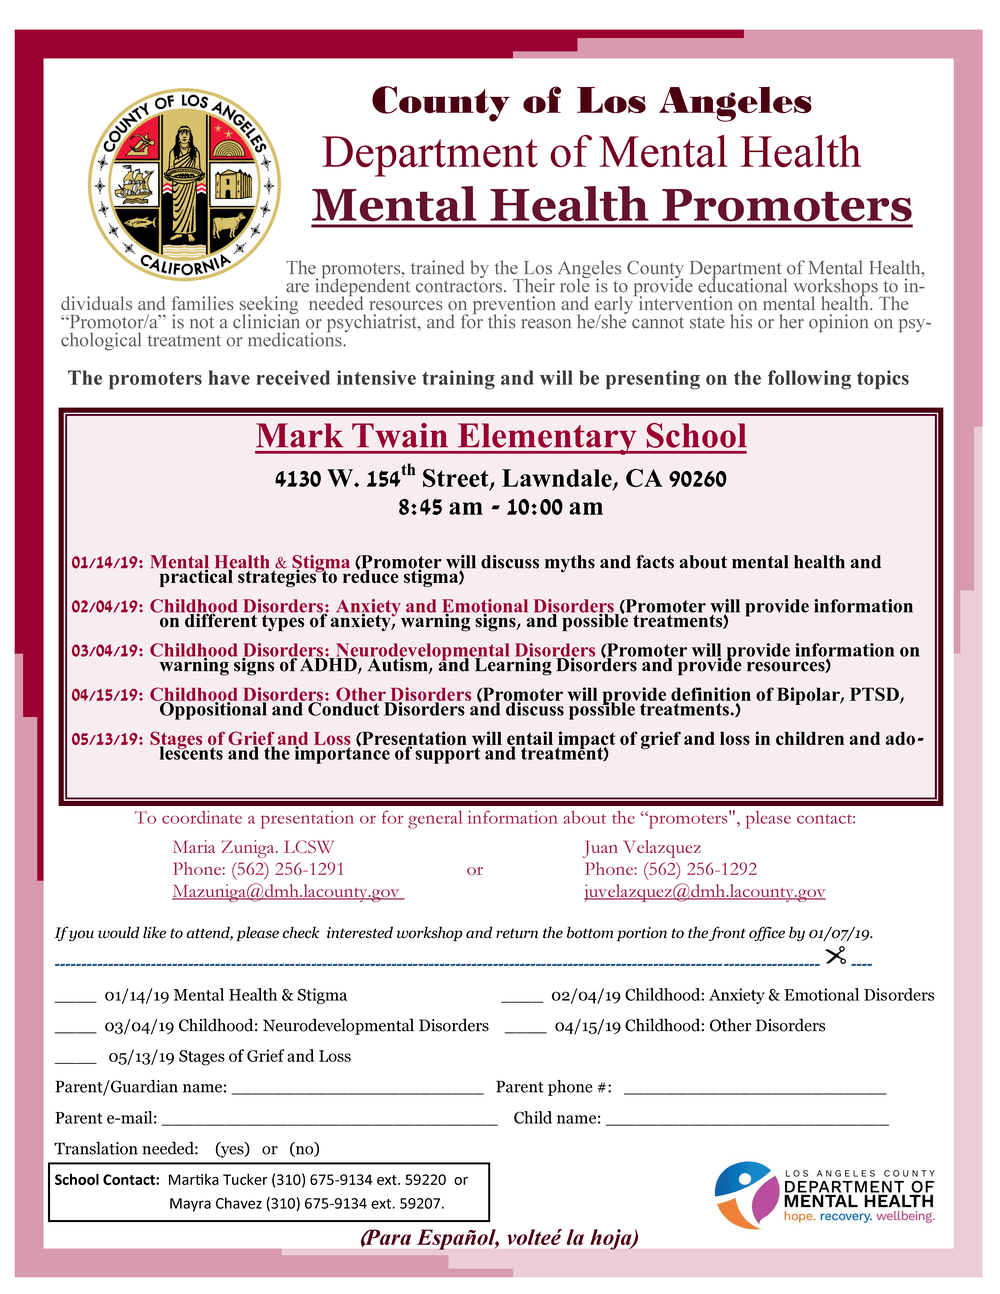 Mental health workshops flyer